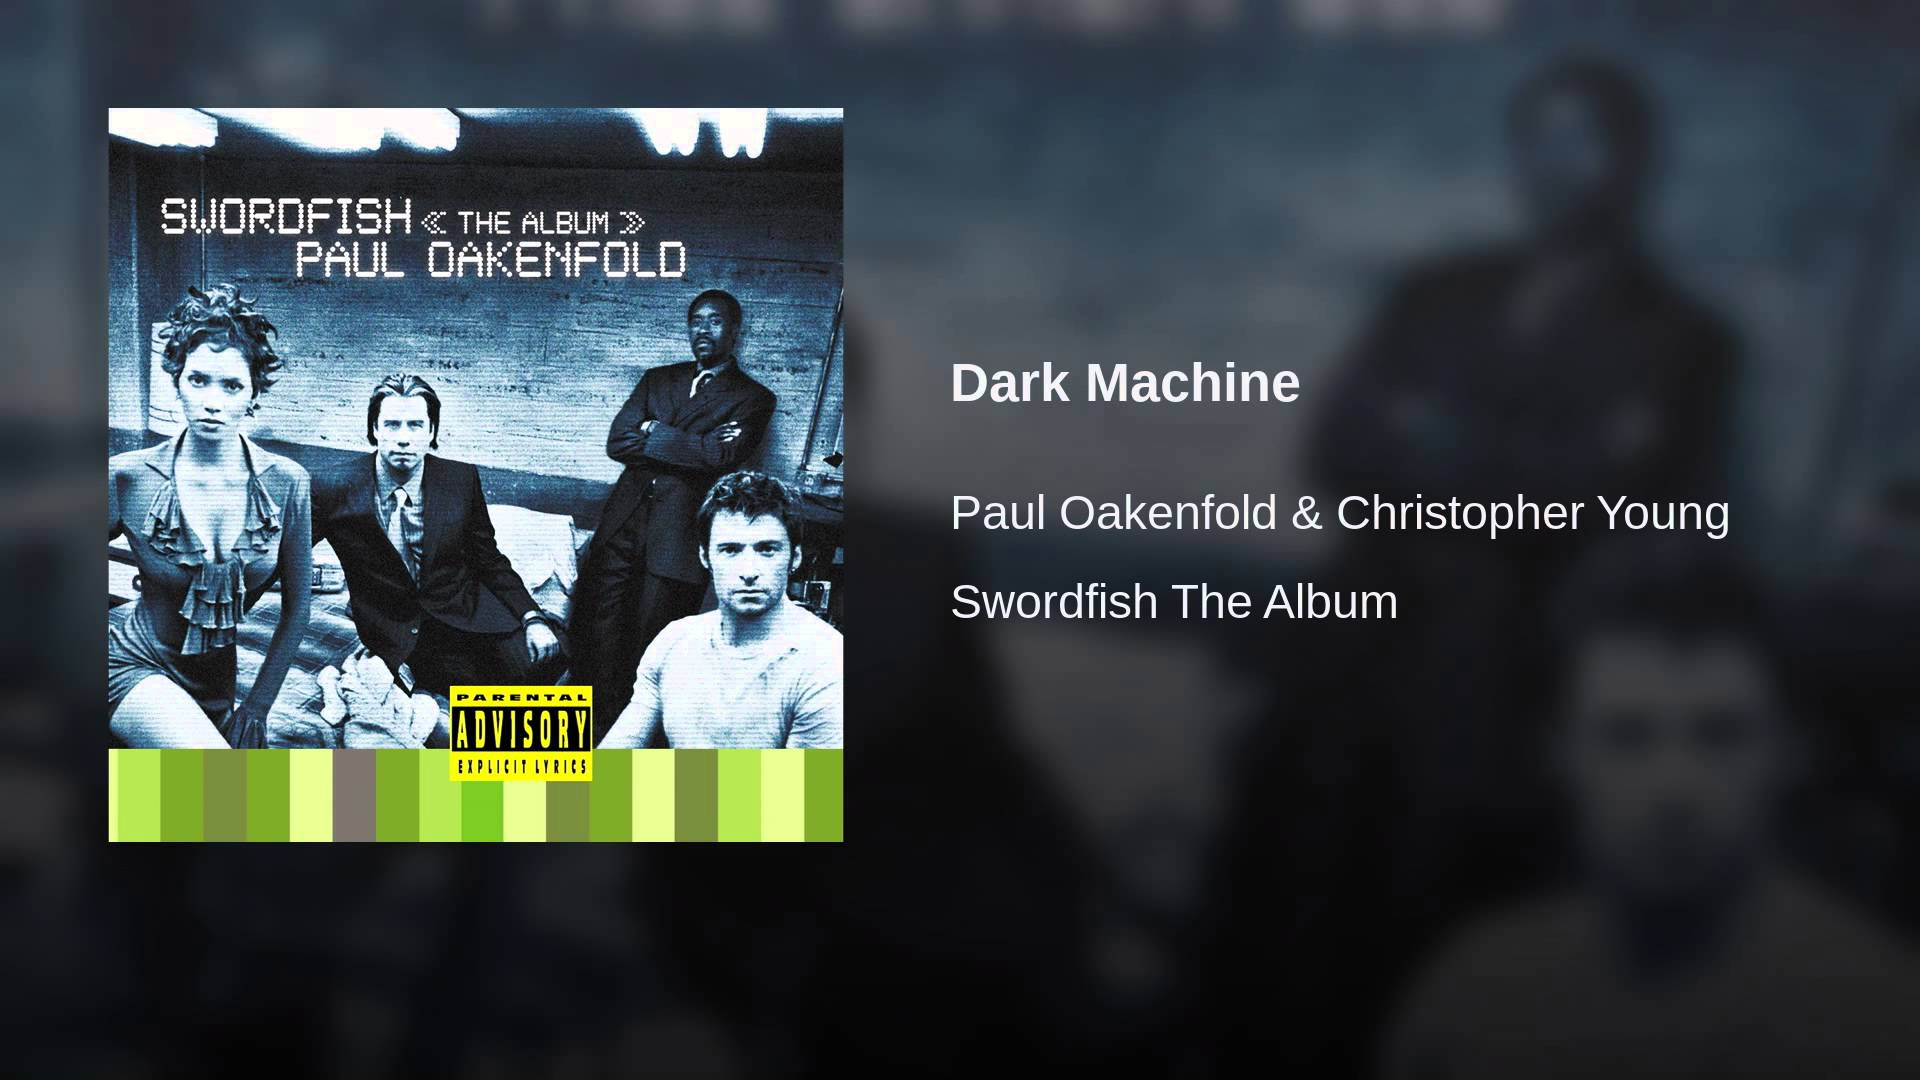 Paul Oakenfold Christopher Young Dark Machine Edm Identity